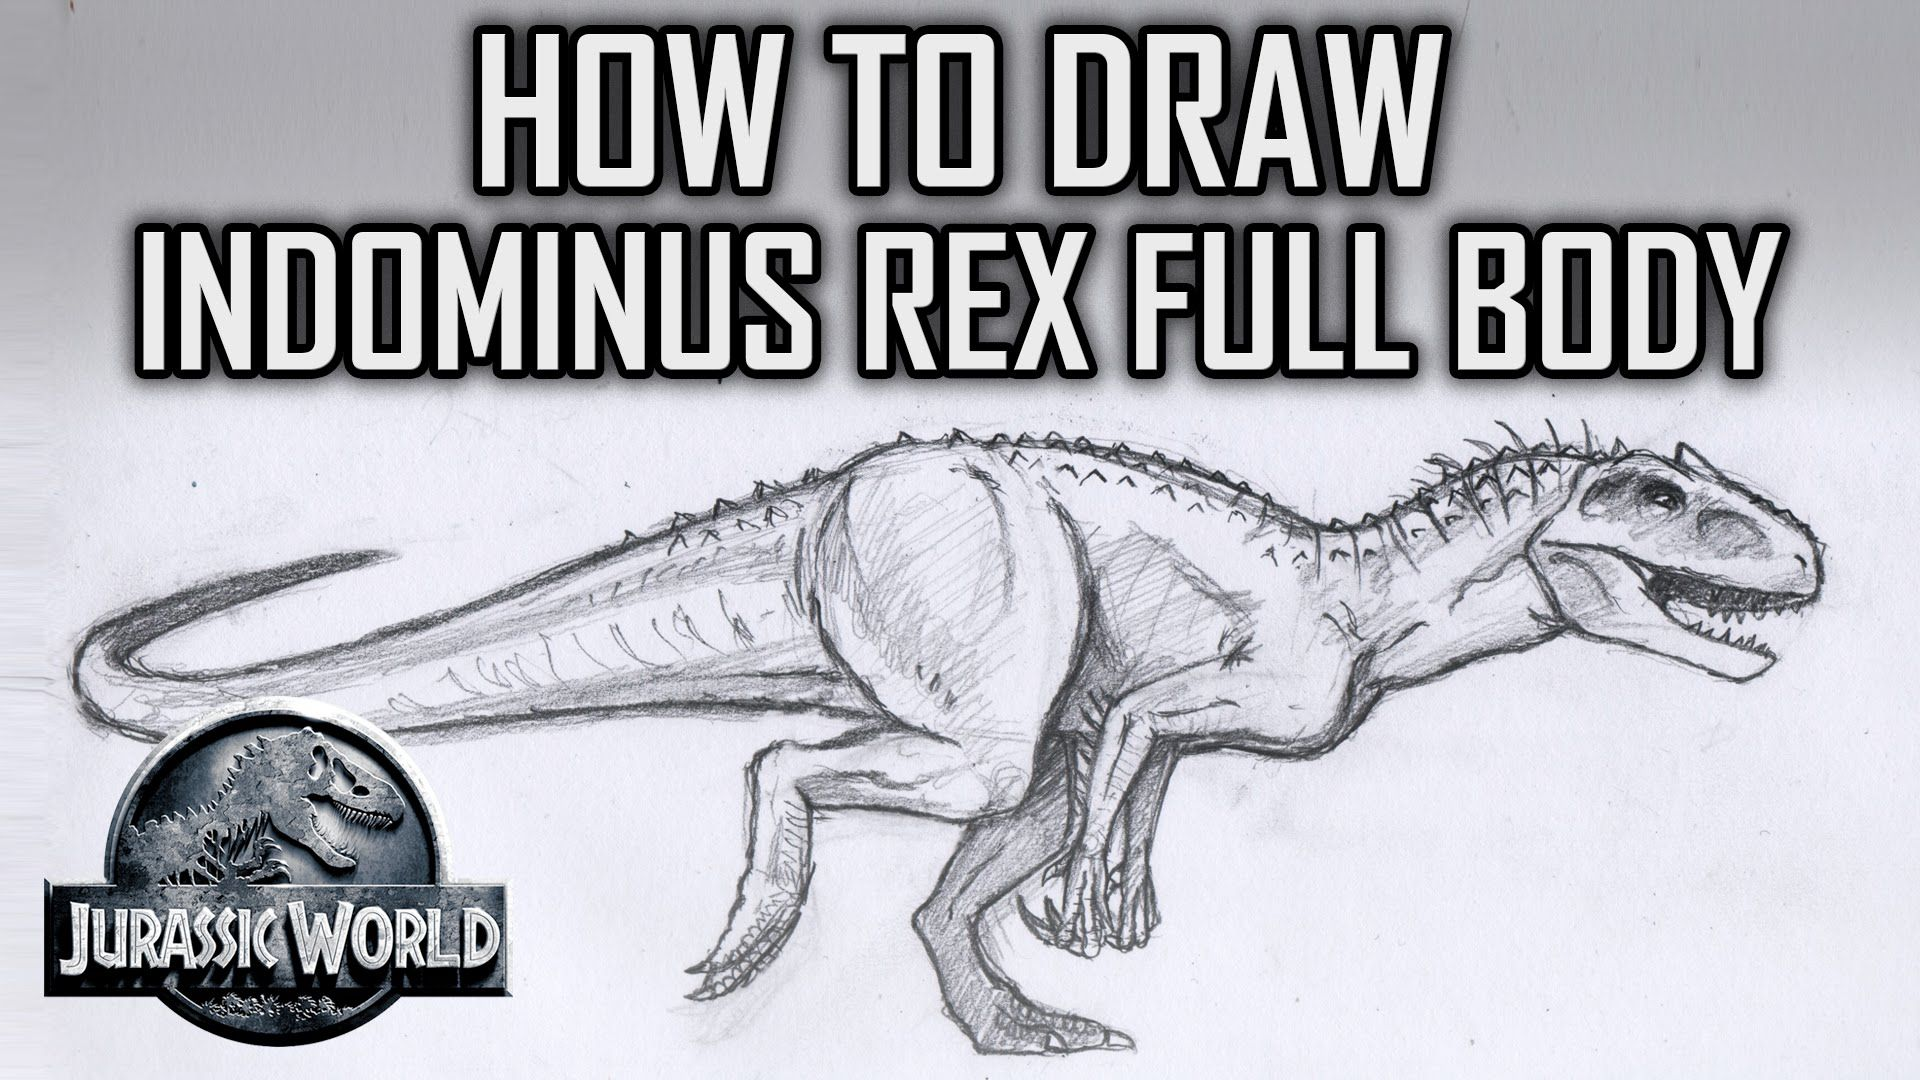 How To Draw Indominus Rex Full Body Jurassic World